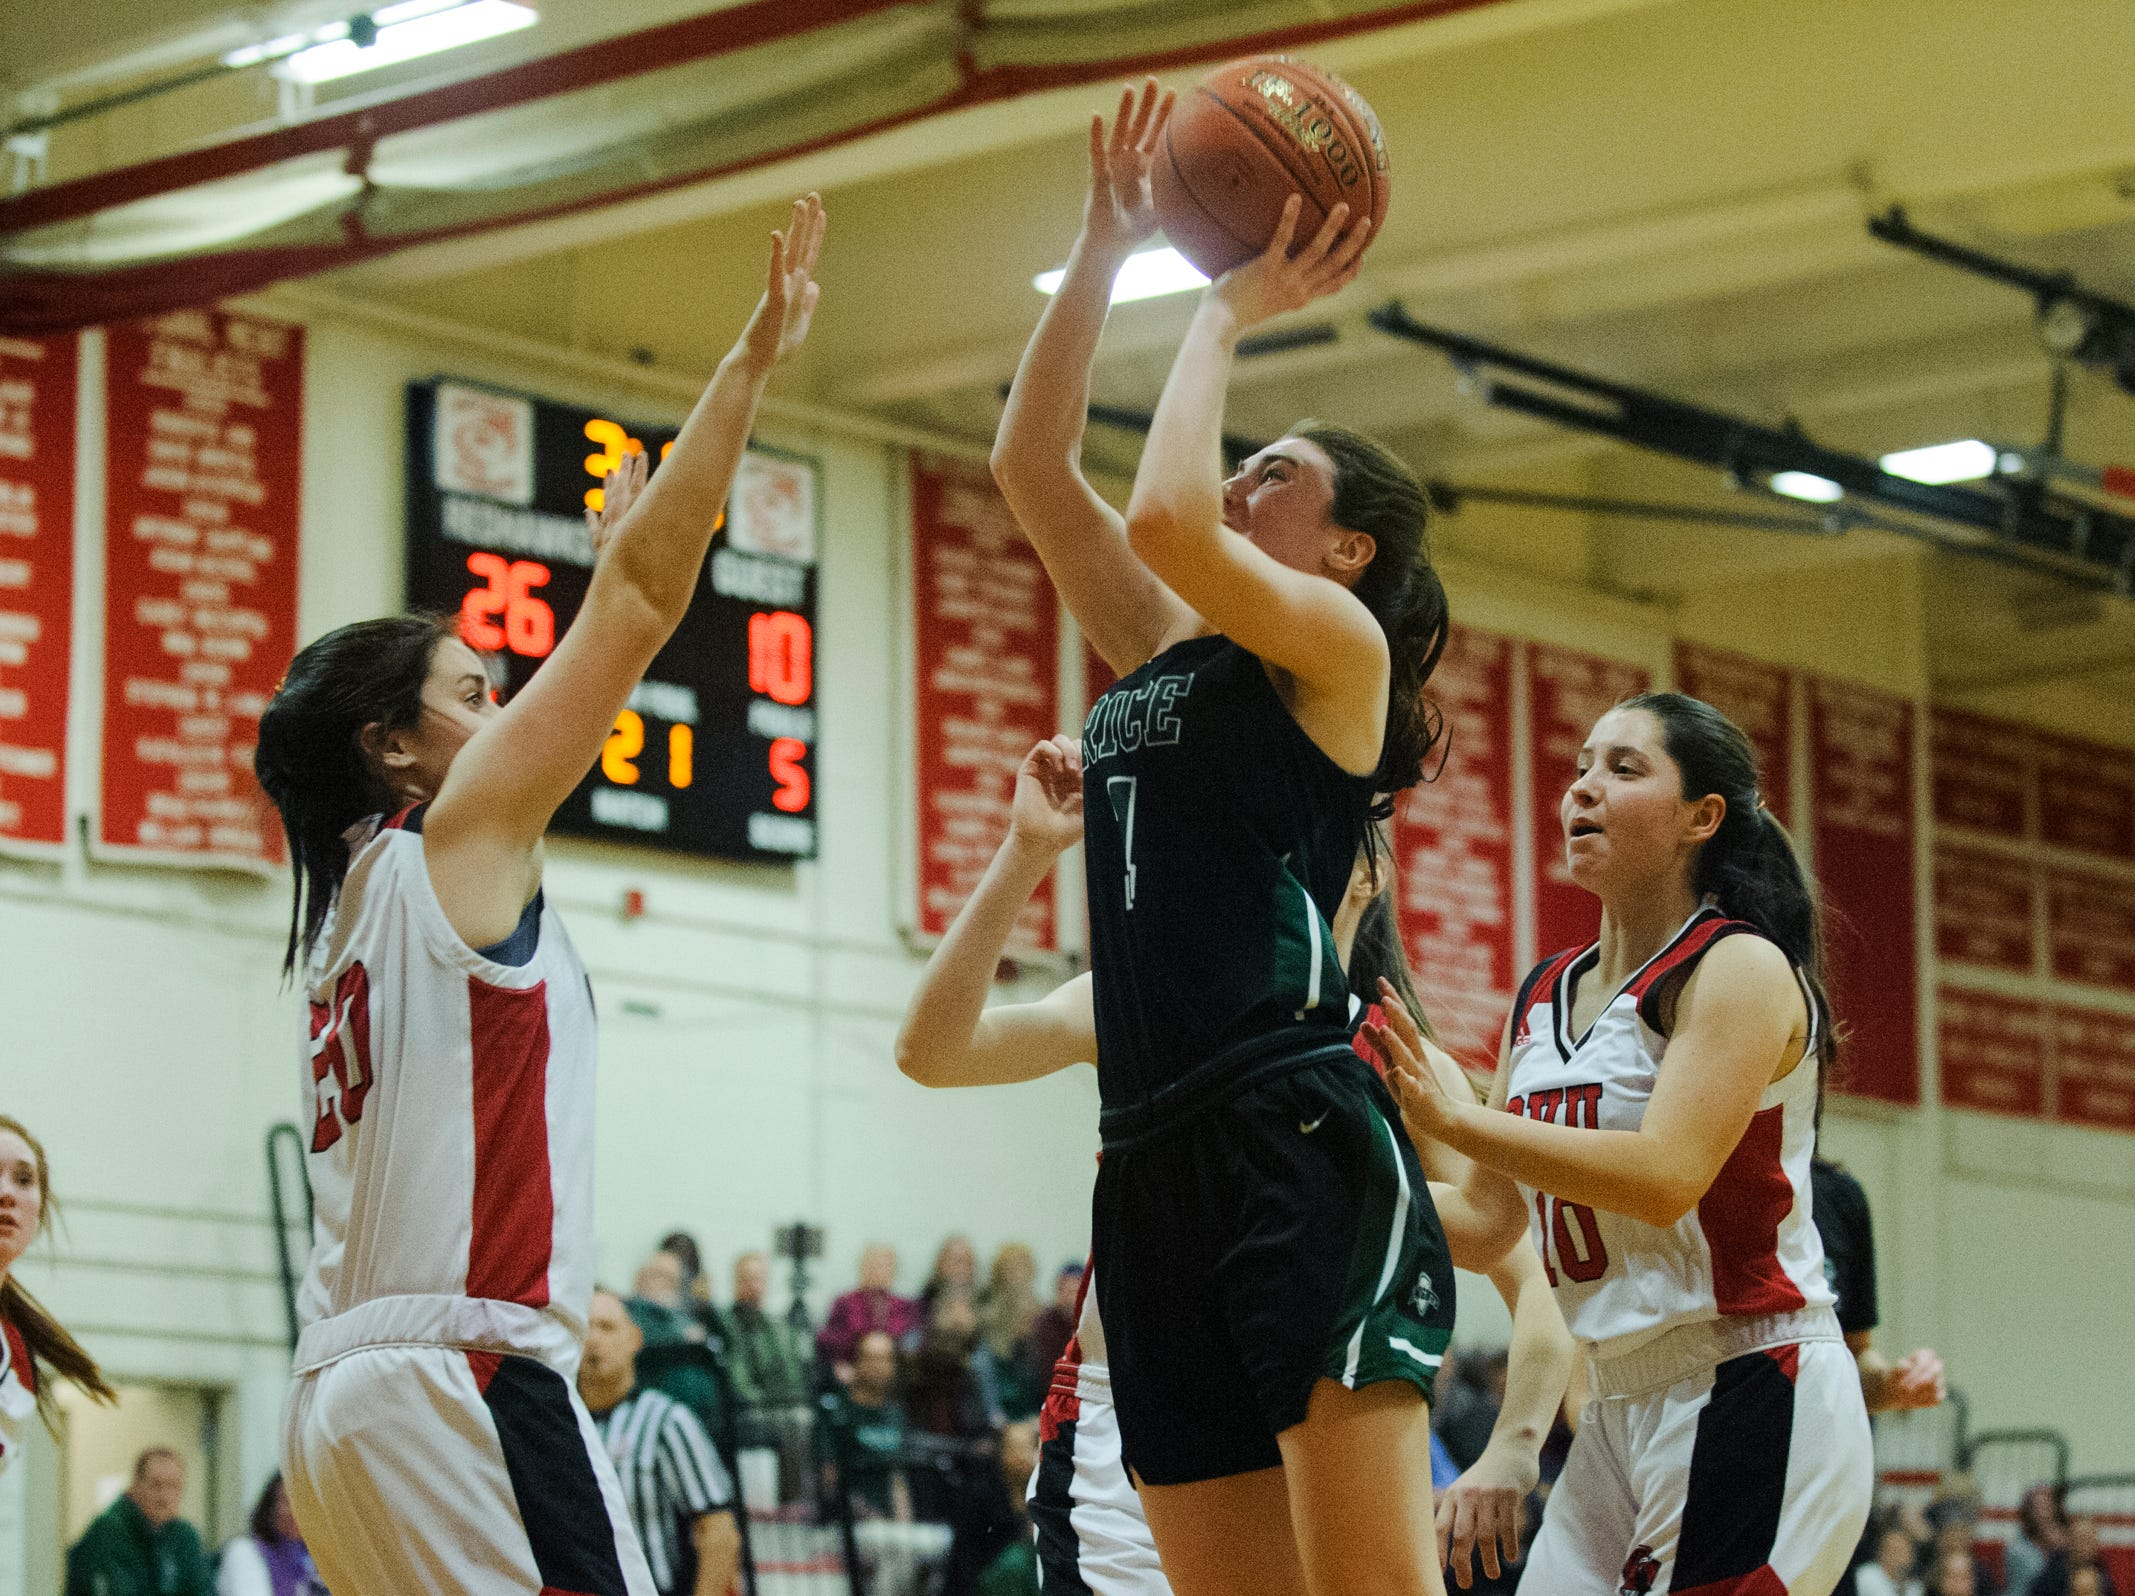 Rice's Sadie Vincent (3) leaps to shoot the ball during high school girls basketball game between the Rice Green Knights and the Champlain Valley Union Redhawks at CVU High School on Friday night January 11, 2019 in Hinesburg.